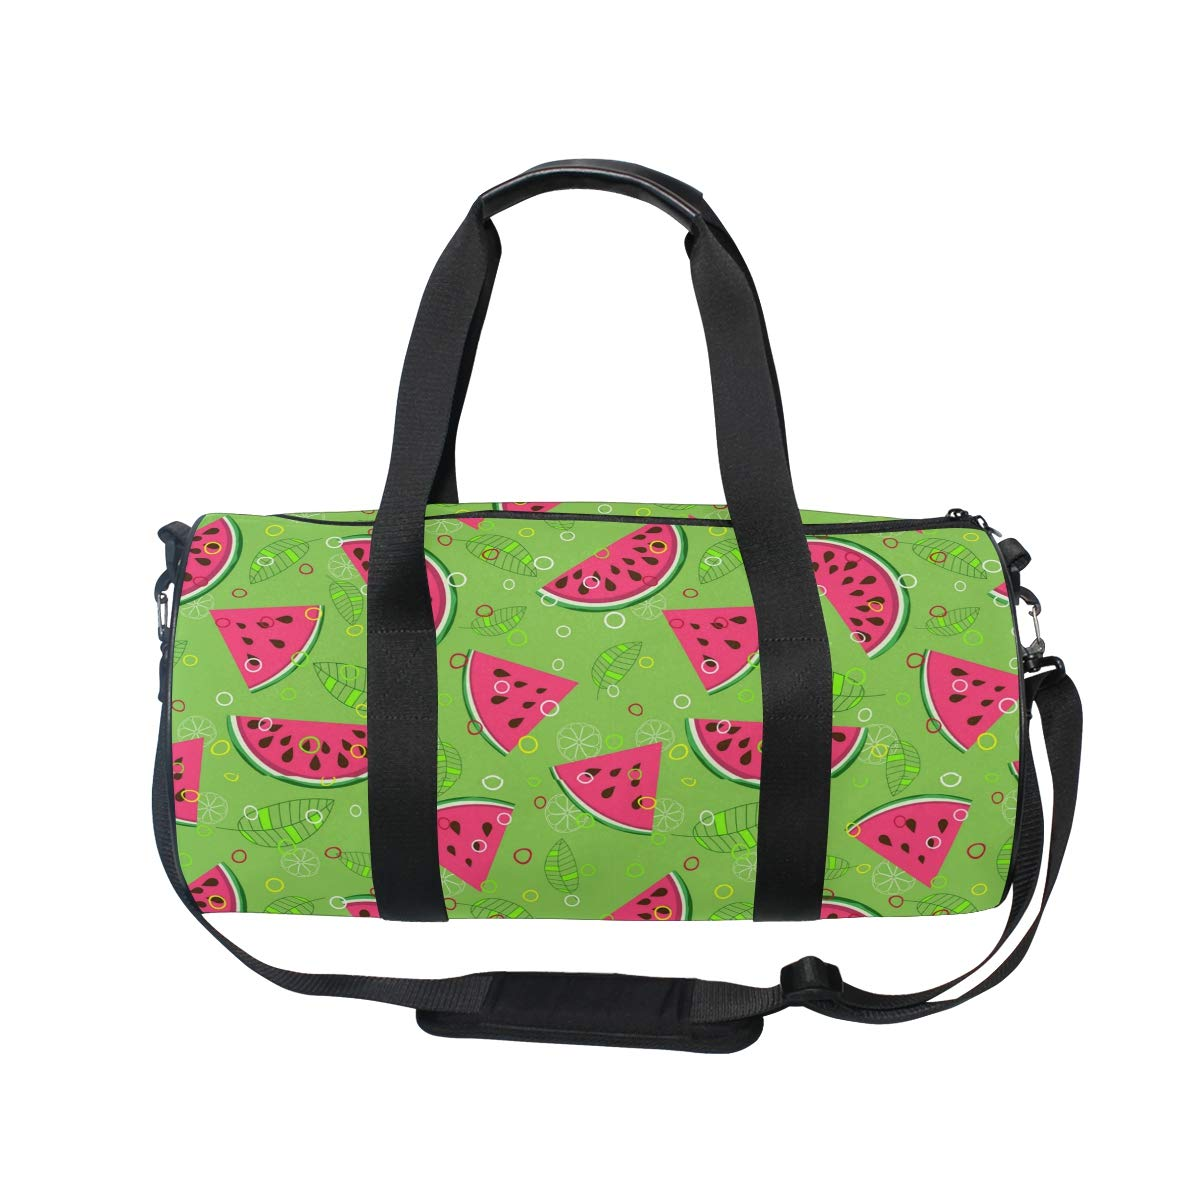 Waterproof Non-Slip Wearable Crossbody Bag fitness bag Shoulder Bag Fruit Fly Killer Picture